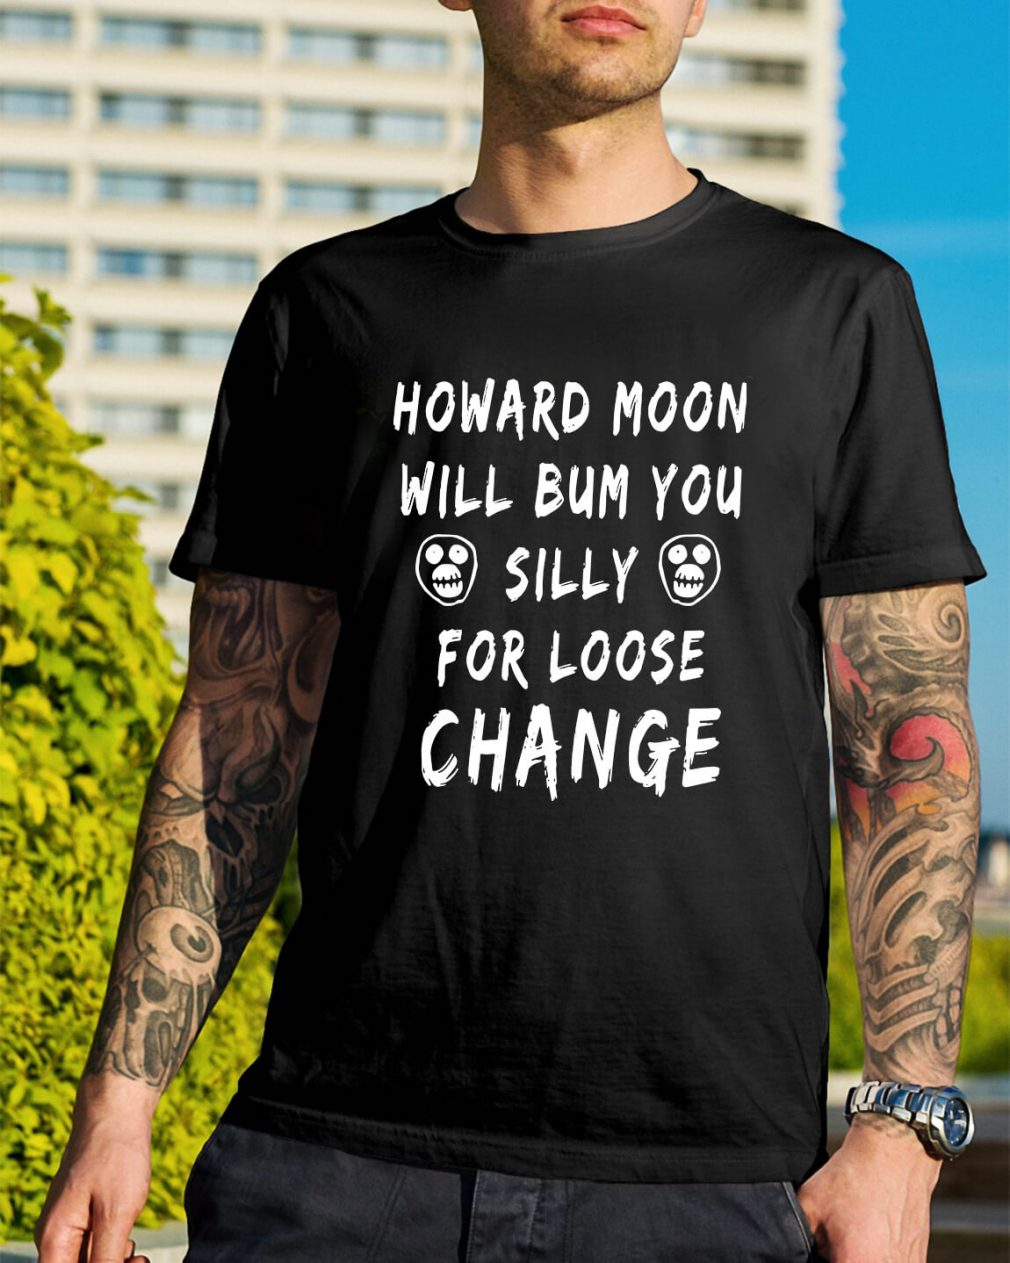 Howard moon will bum you silly for loose change shirt